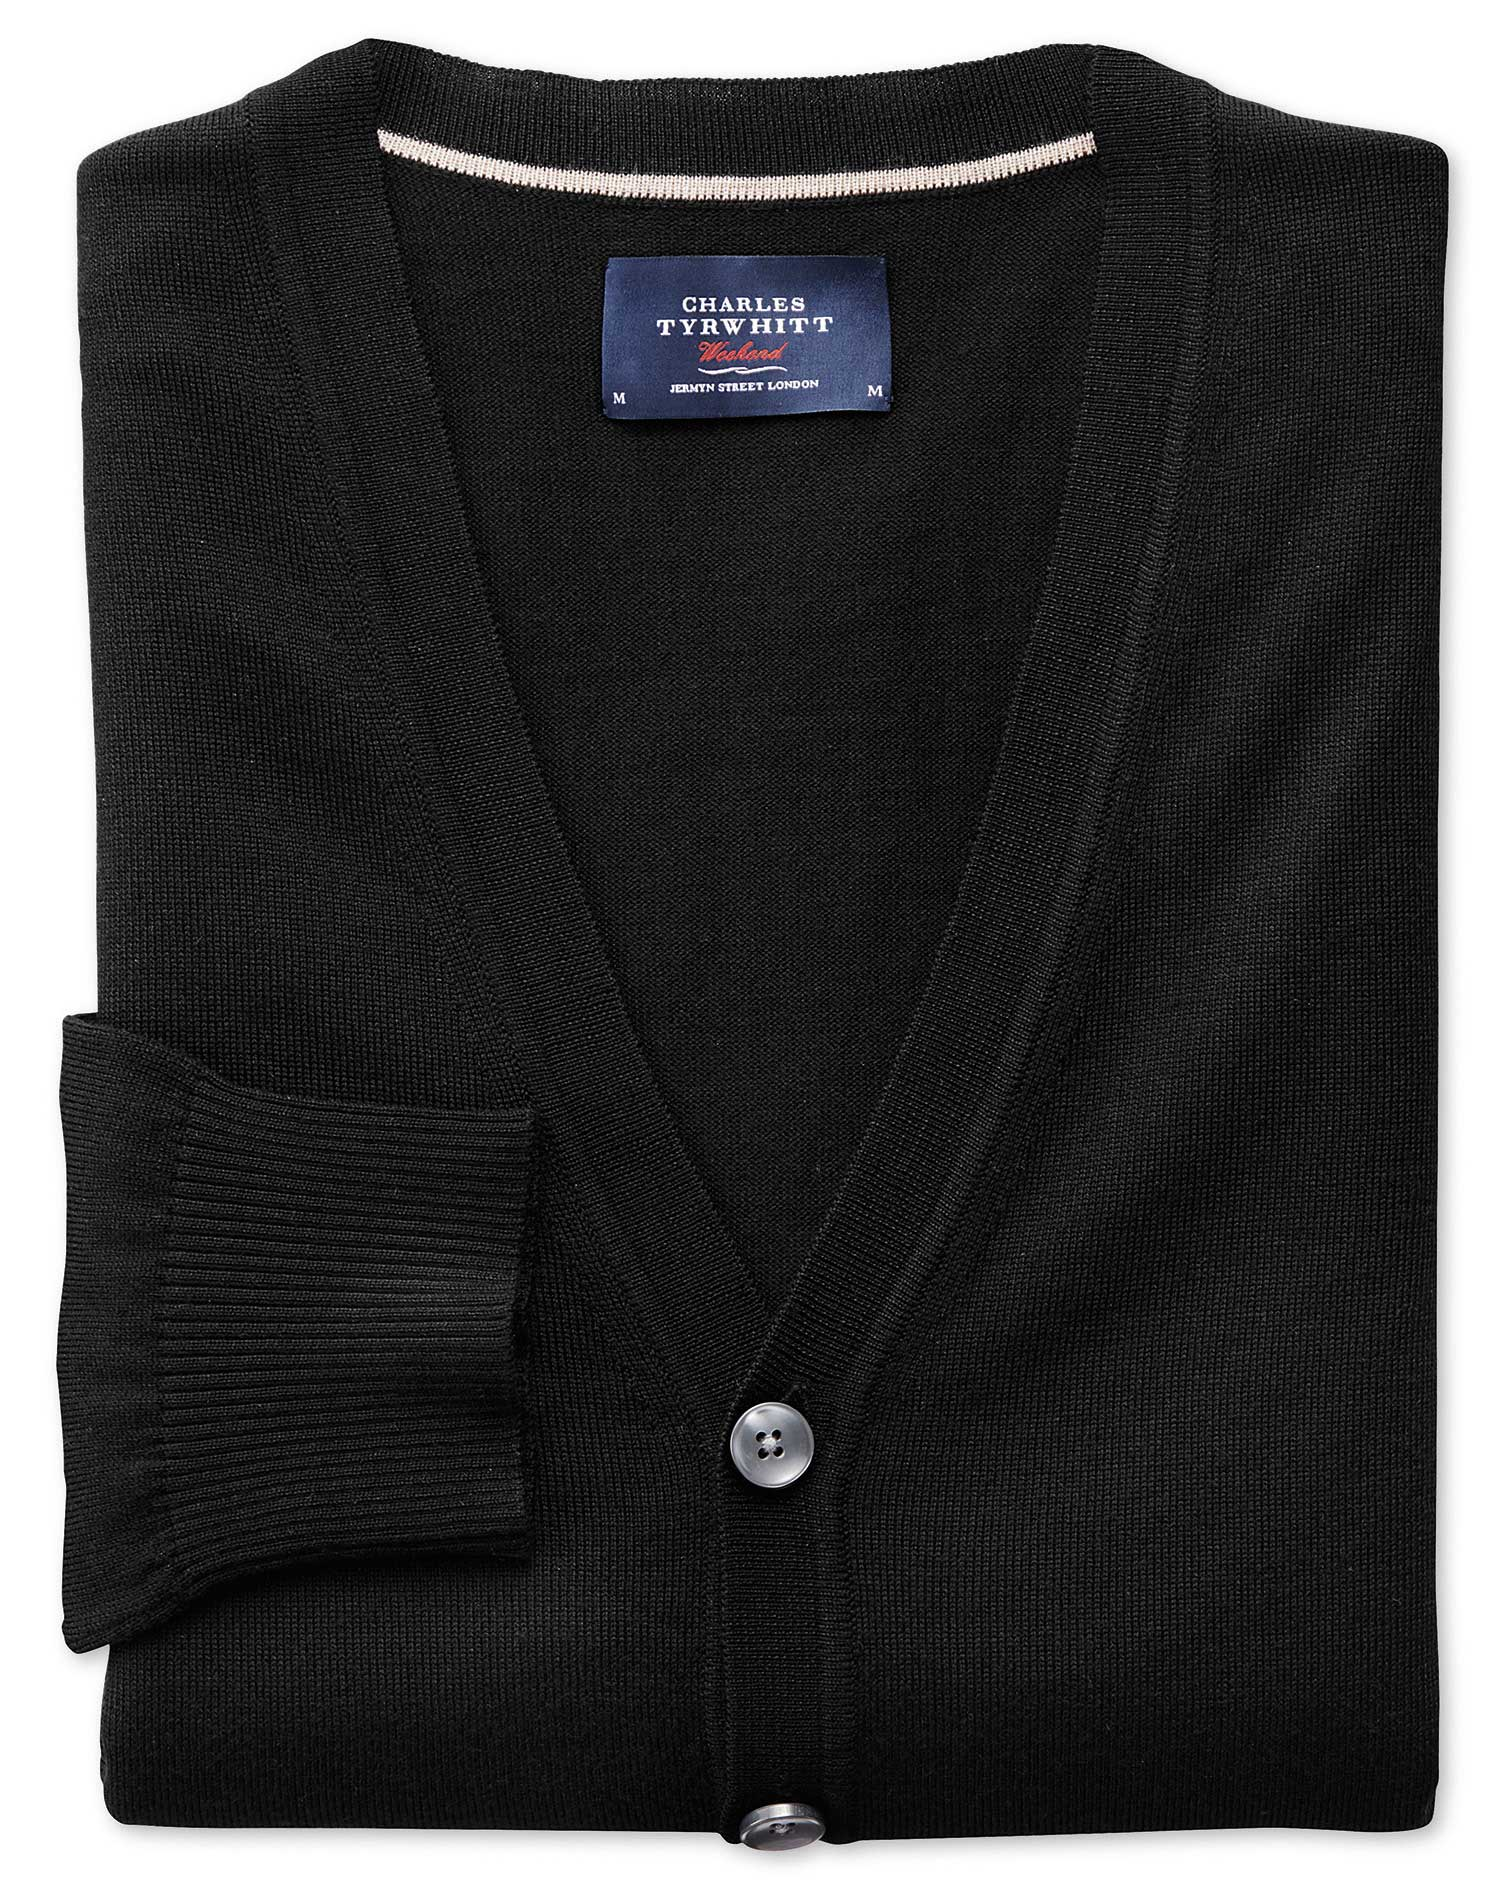 Black Merino Wool Cardigan Size Medium by Charles Tyrwhitt